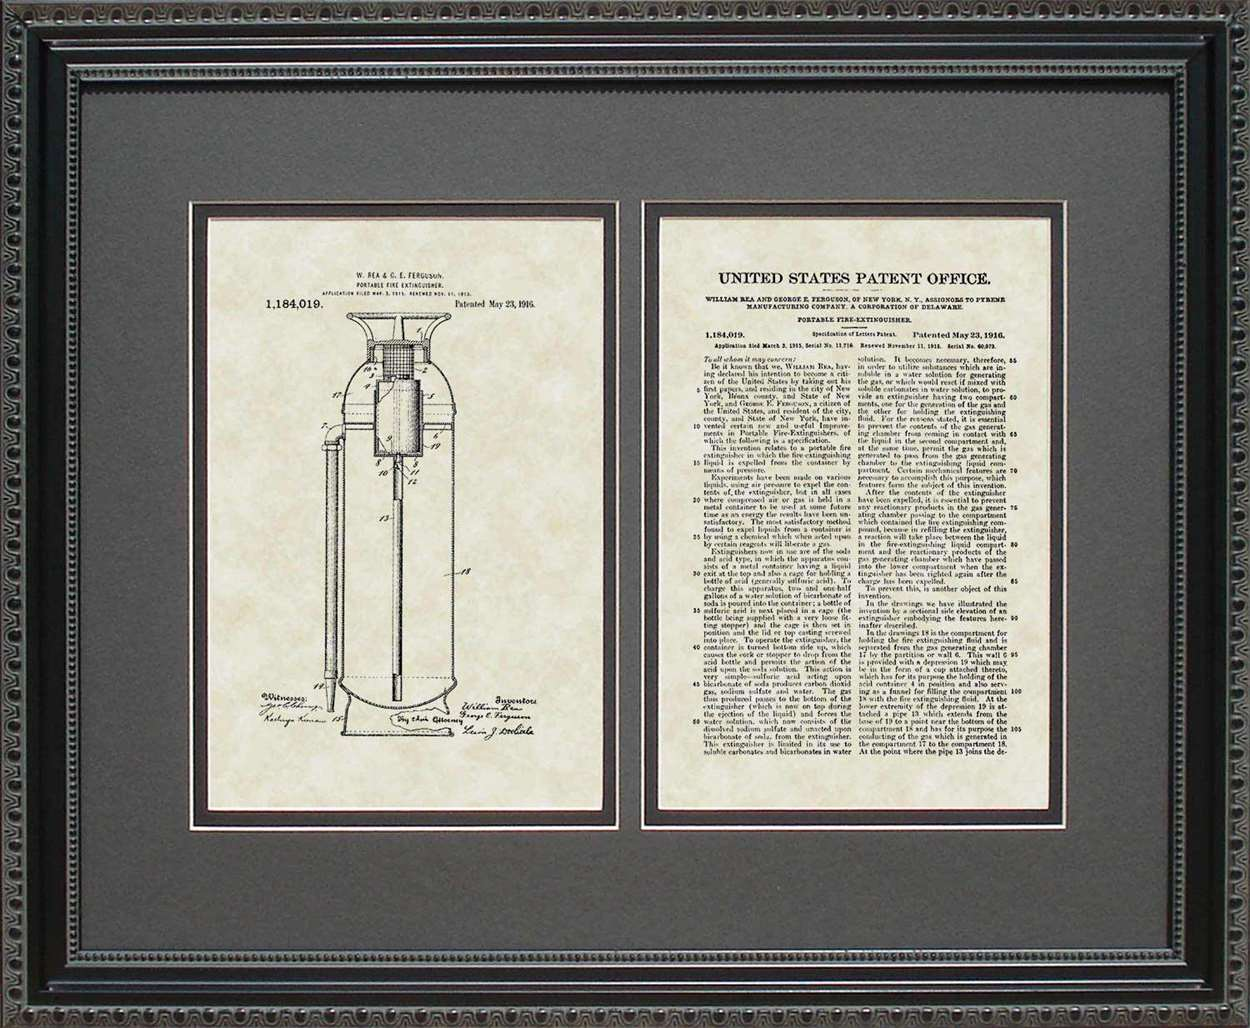 Fire Extinguisher Patent, Art & Copy, Rea, 1916, 16x20